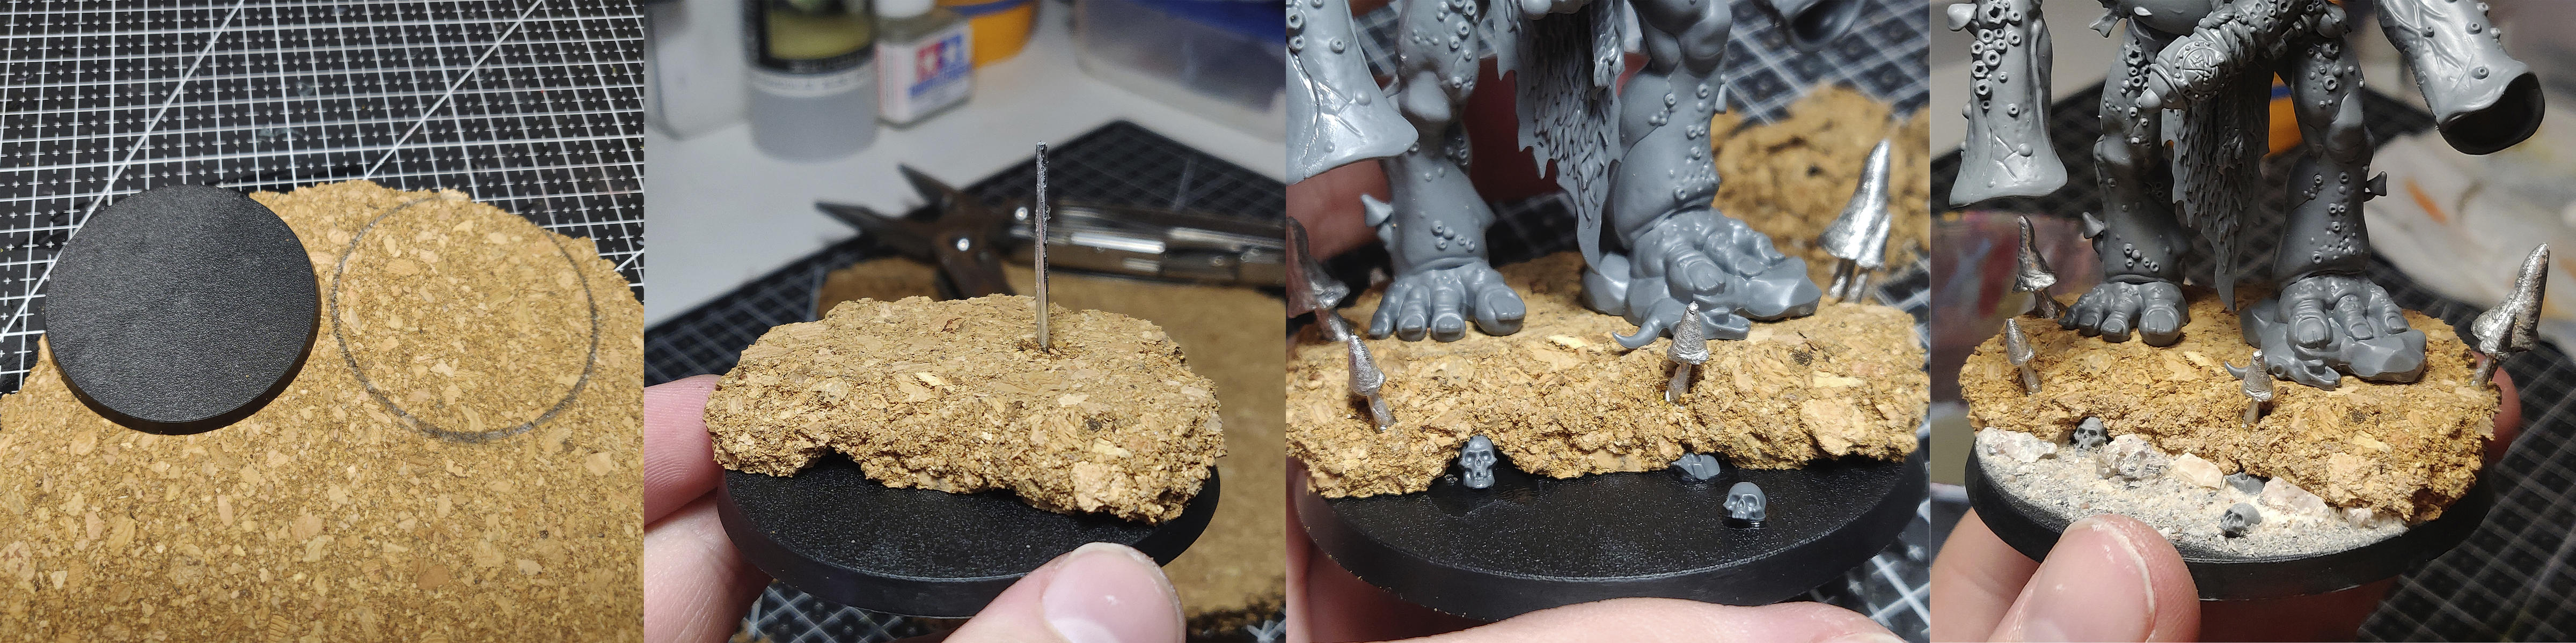 Guide to swamp basing. Working with cork and watereffects.